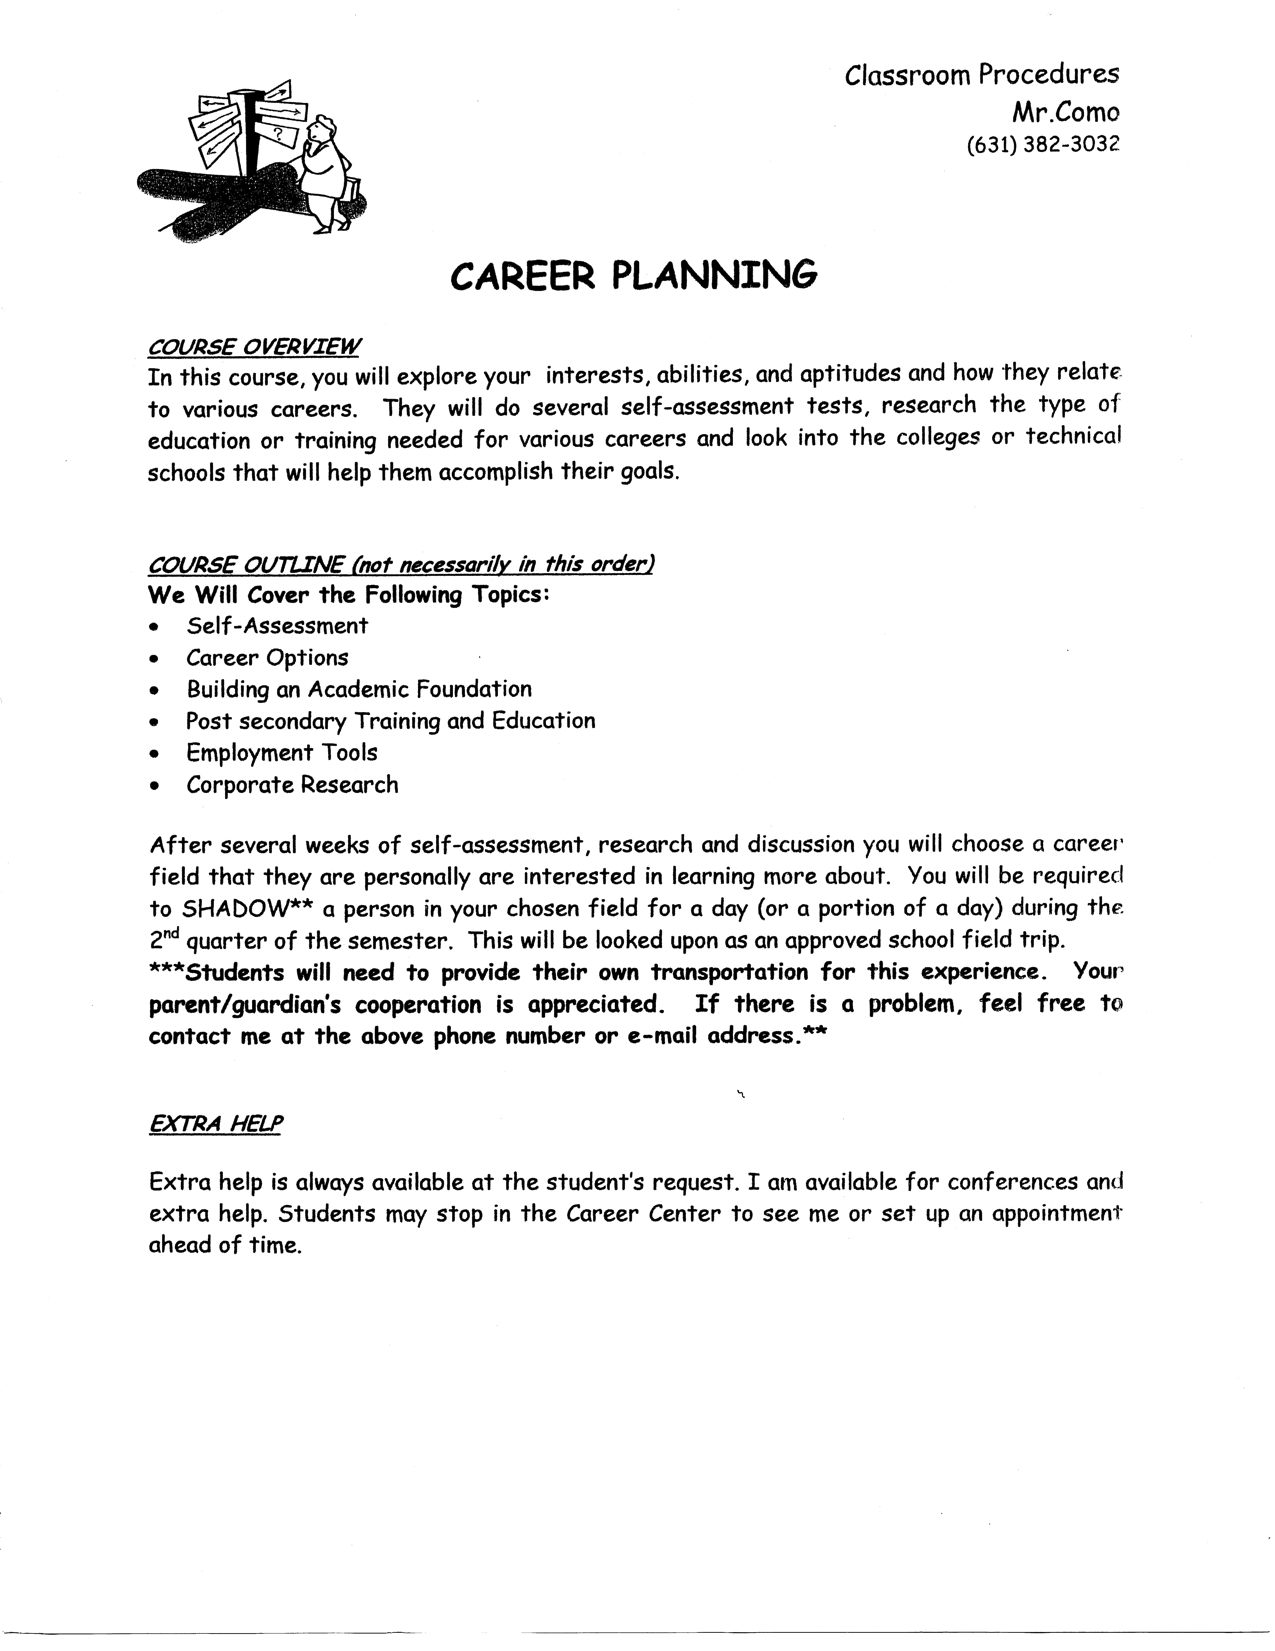 012 Essay Plan Career Planning002 Stirring Template Word Planning Sheet Critical Full